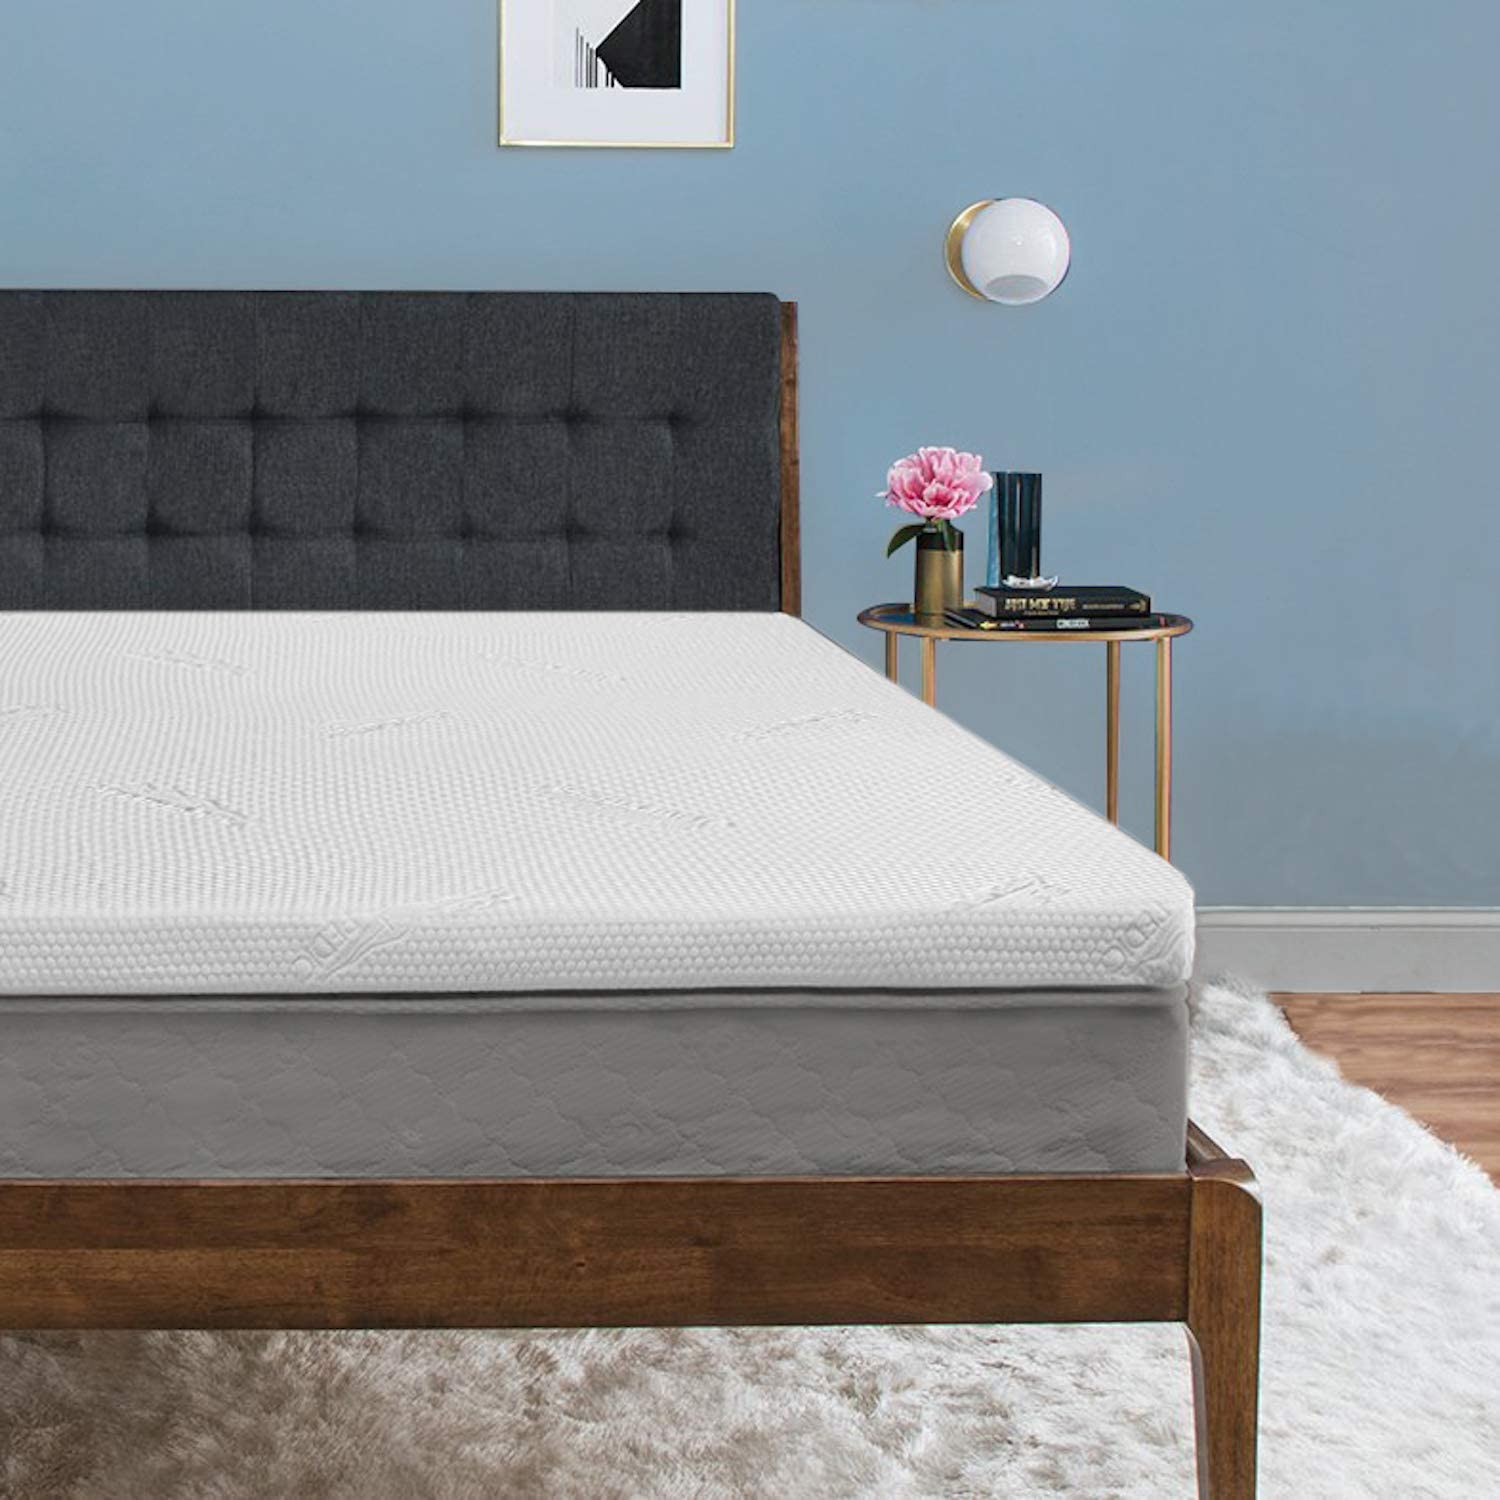 Tempur-Pedic TEMPUR-ProForm Supreme 3-Inch King Mattress Topper, Medium Firm Luxury Premium Foam, Washable Cover